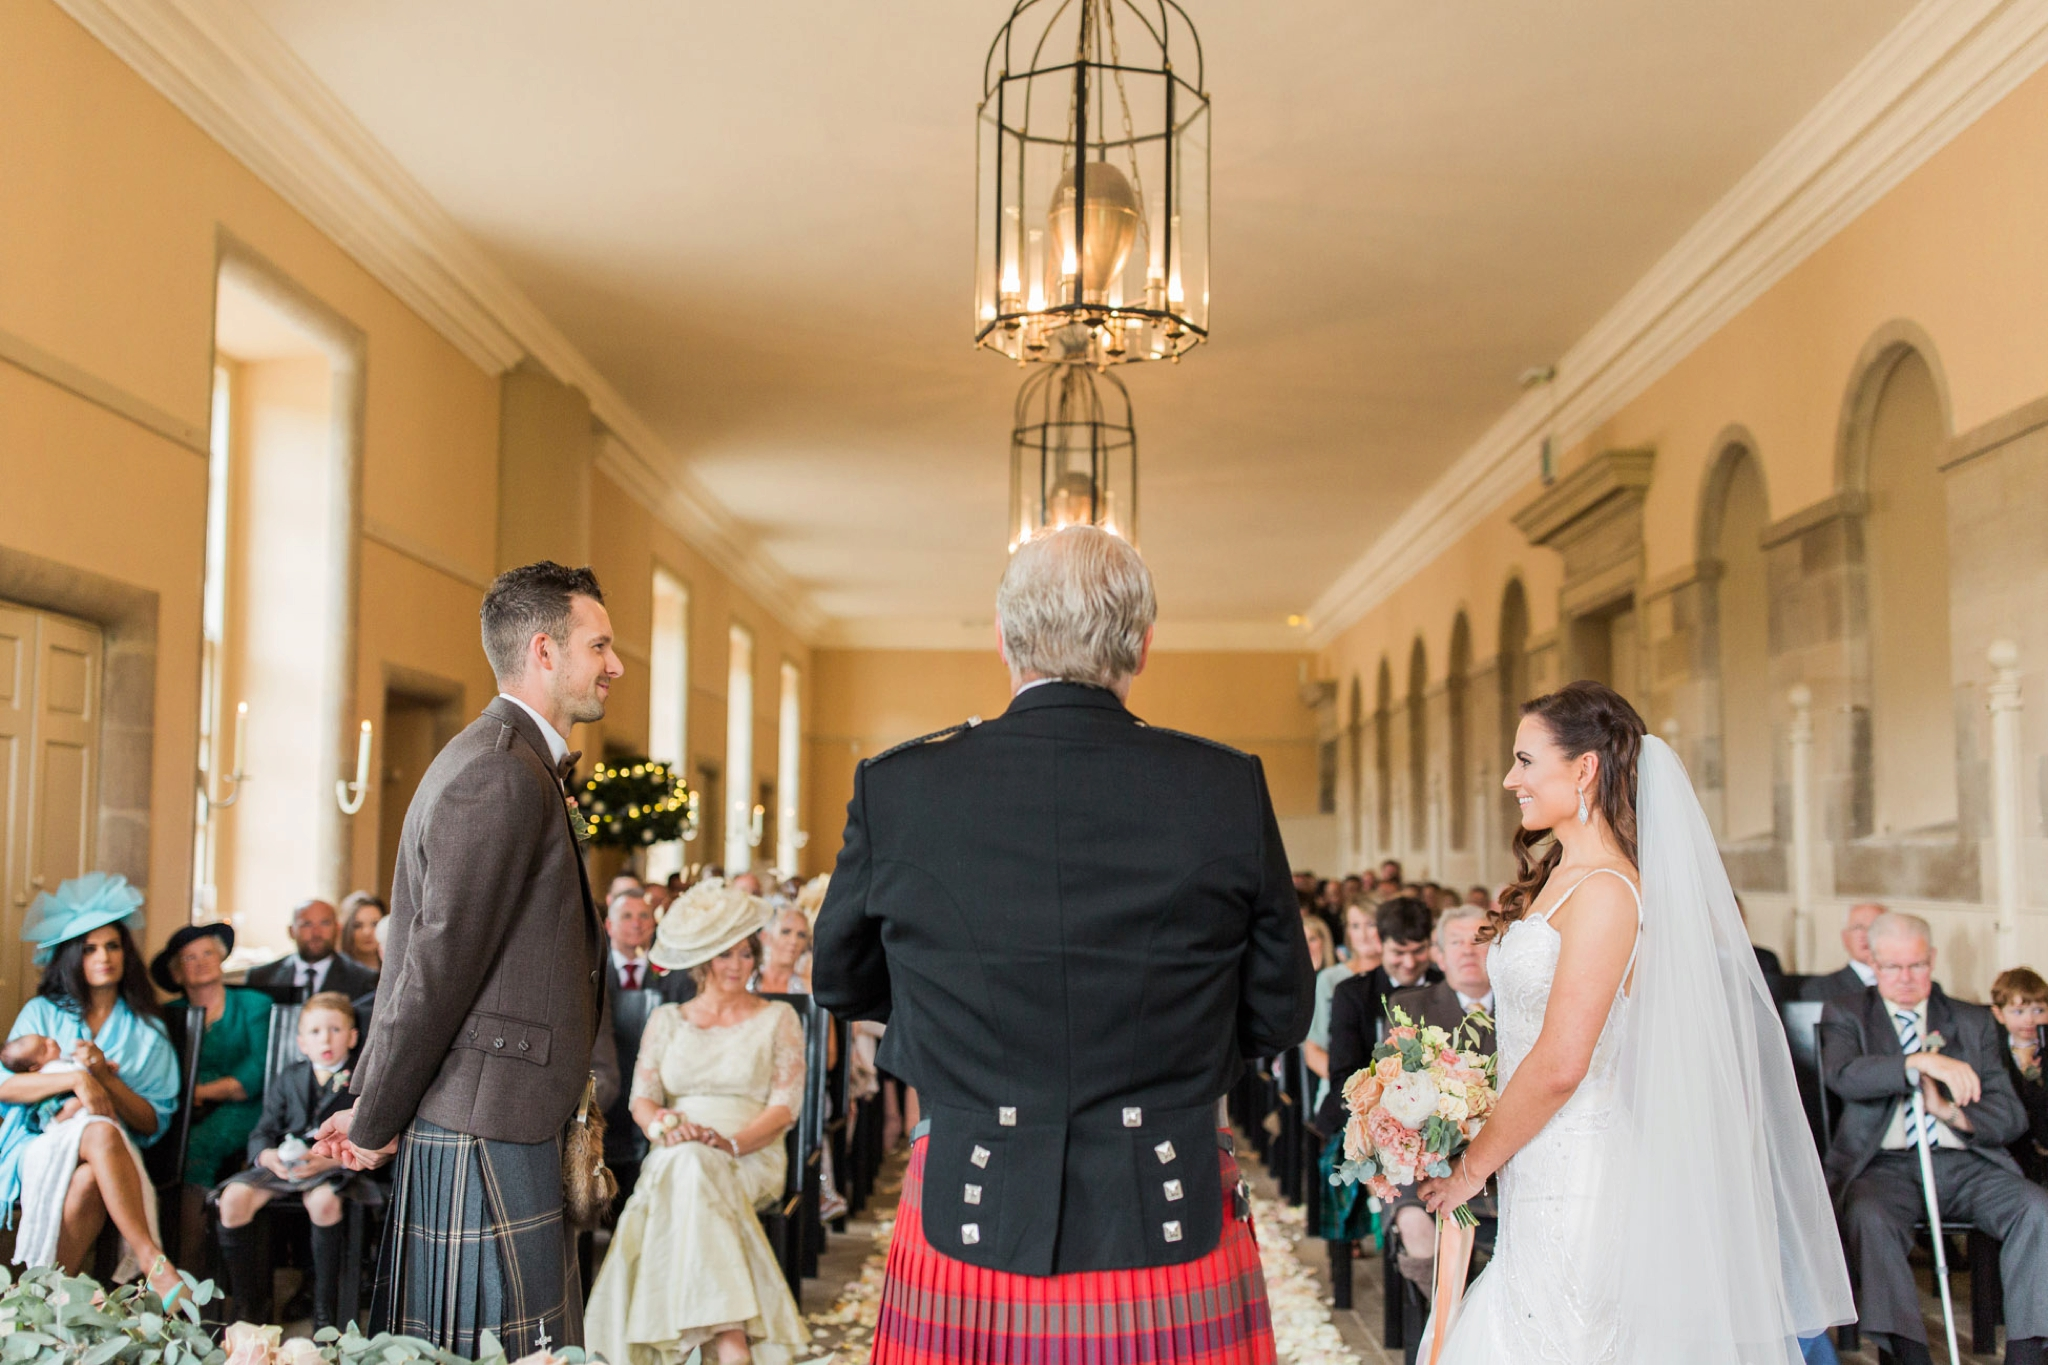 Suzanne_li_photography_hopetoun_house_0033.jpg